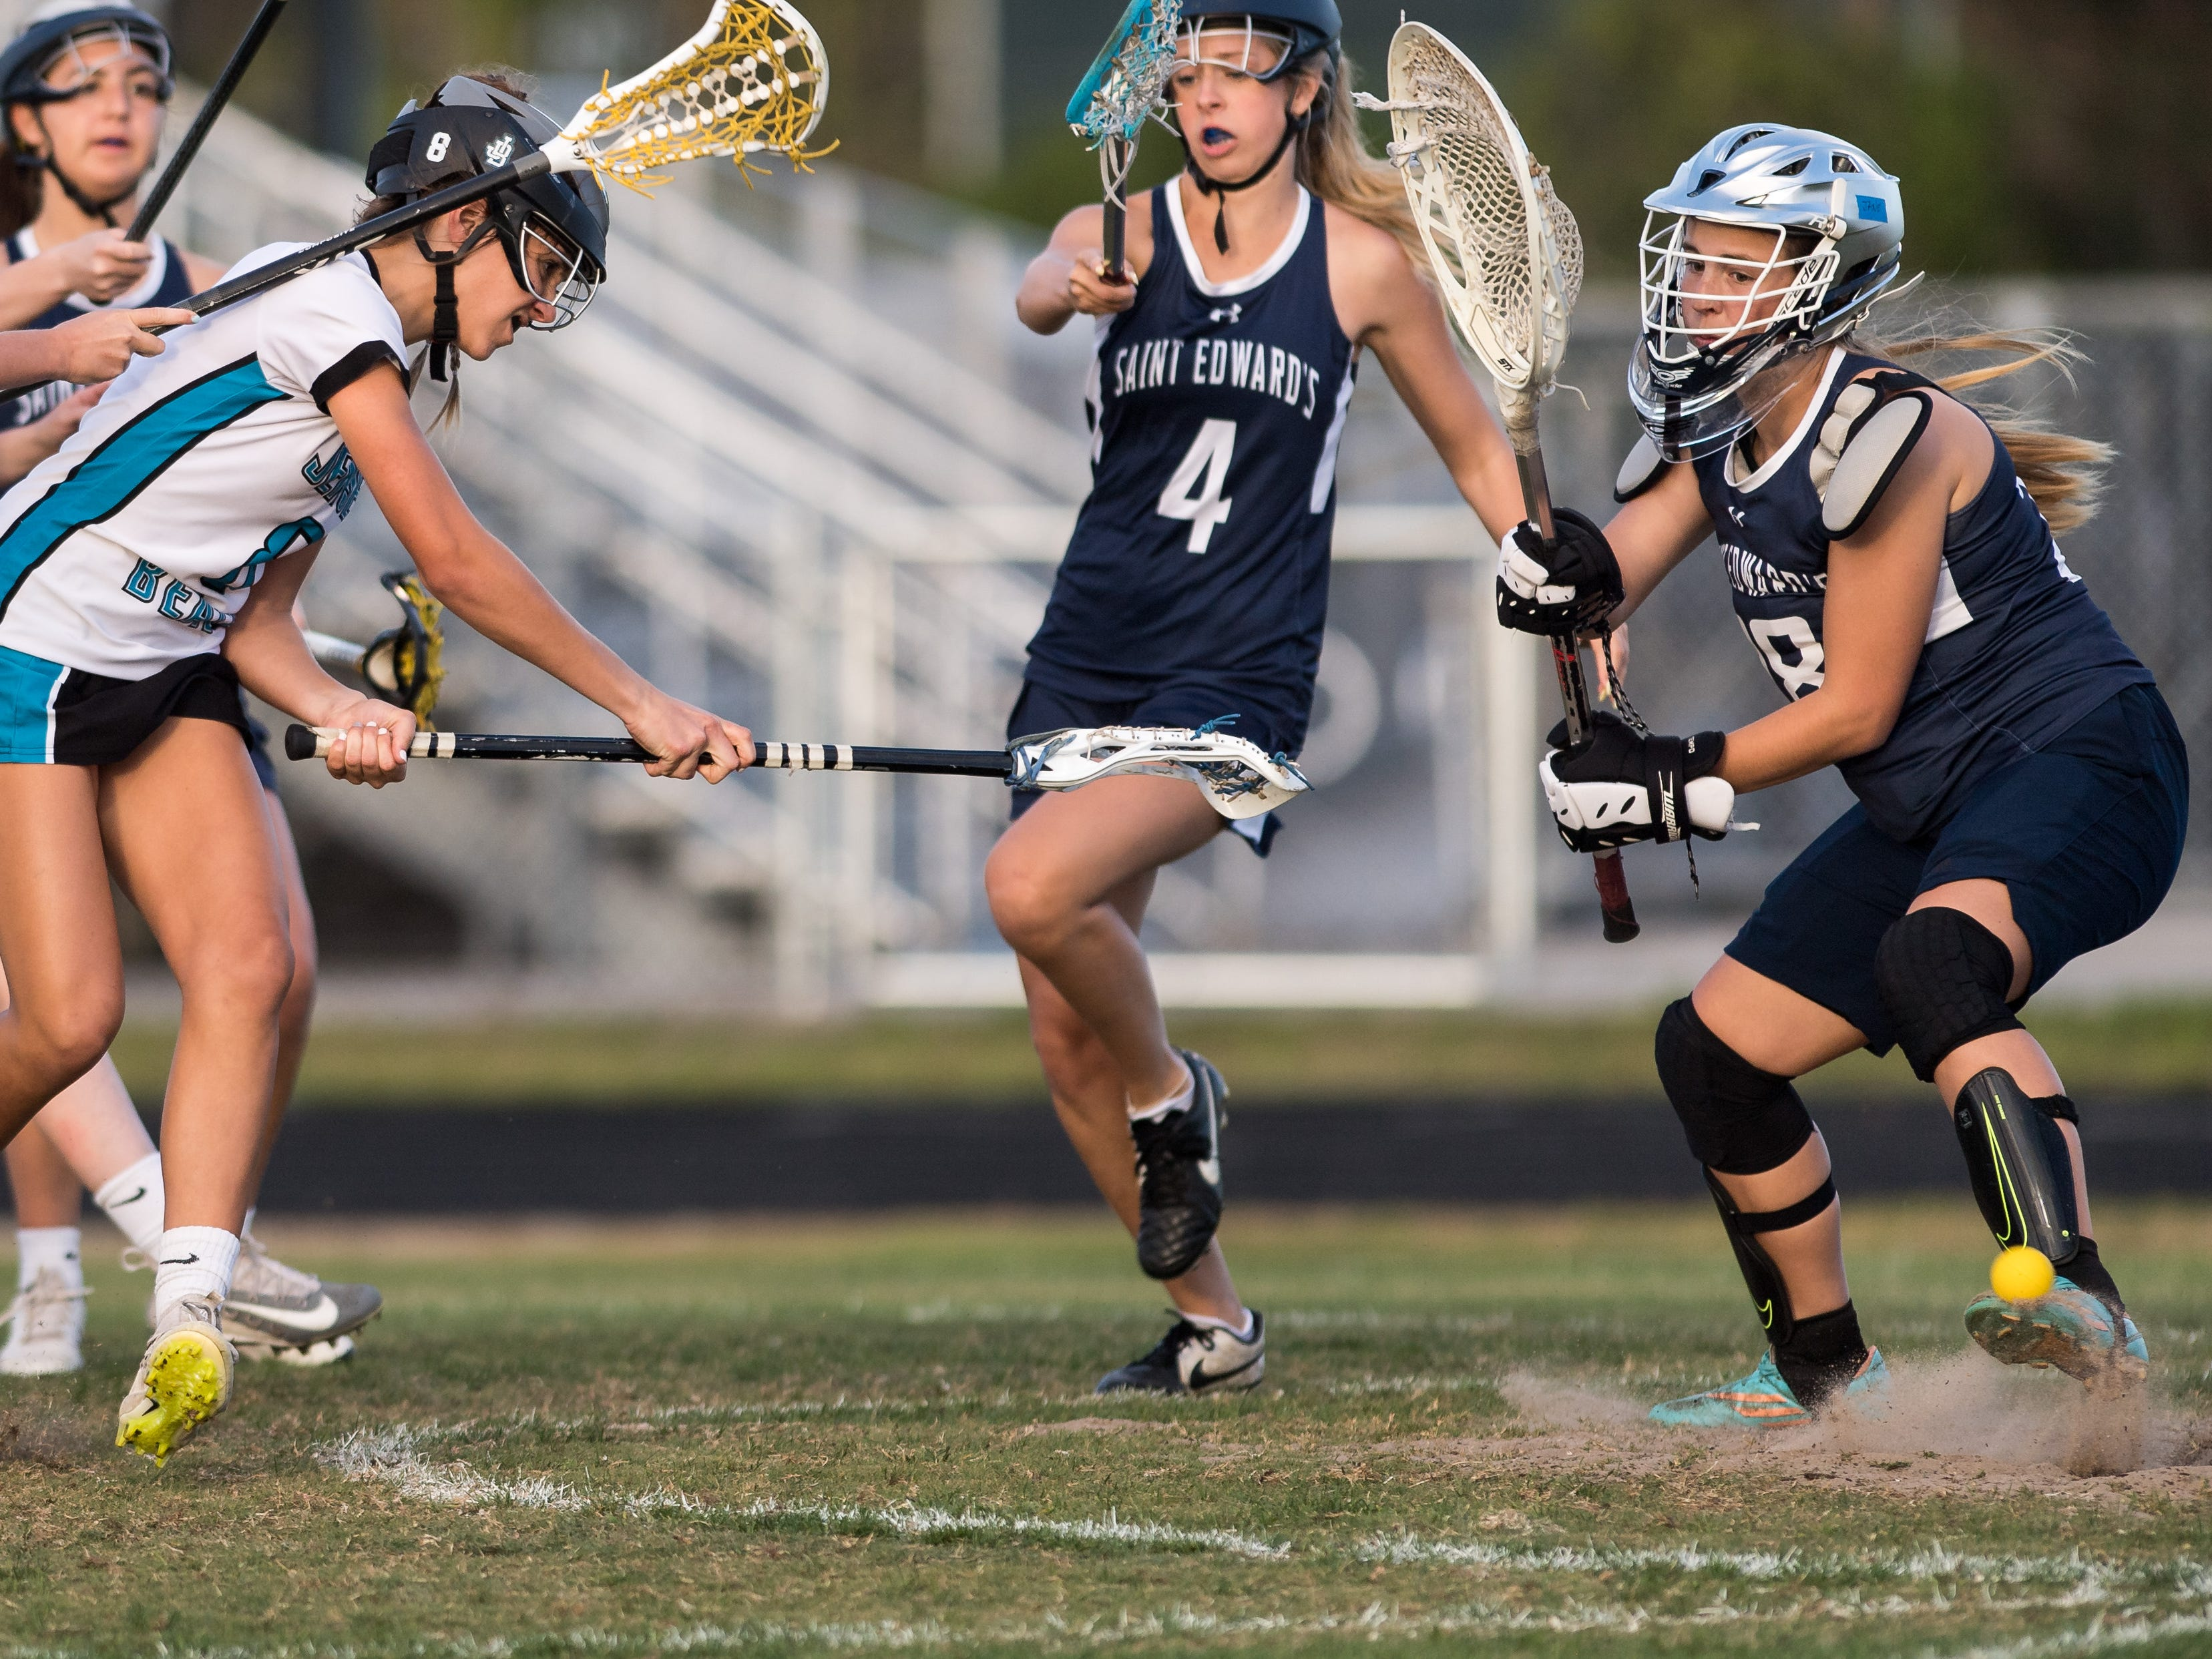 Jensen Beach's Faith Hamel (left) bounces a shot past St. Edward's goalkeeper Jane Callaghan to score in the second half at the high school girls lacrosse game Thursday, March 28, 2019, at Jensen Beach High School.